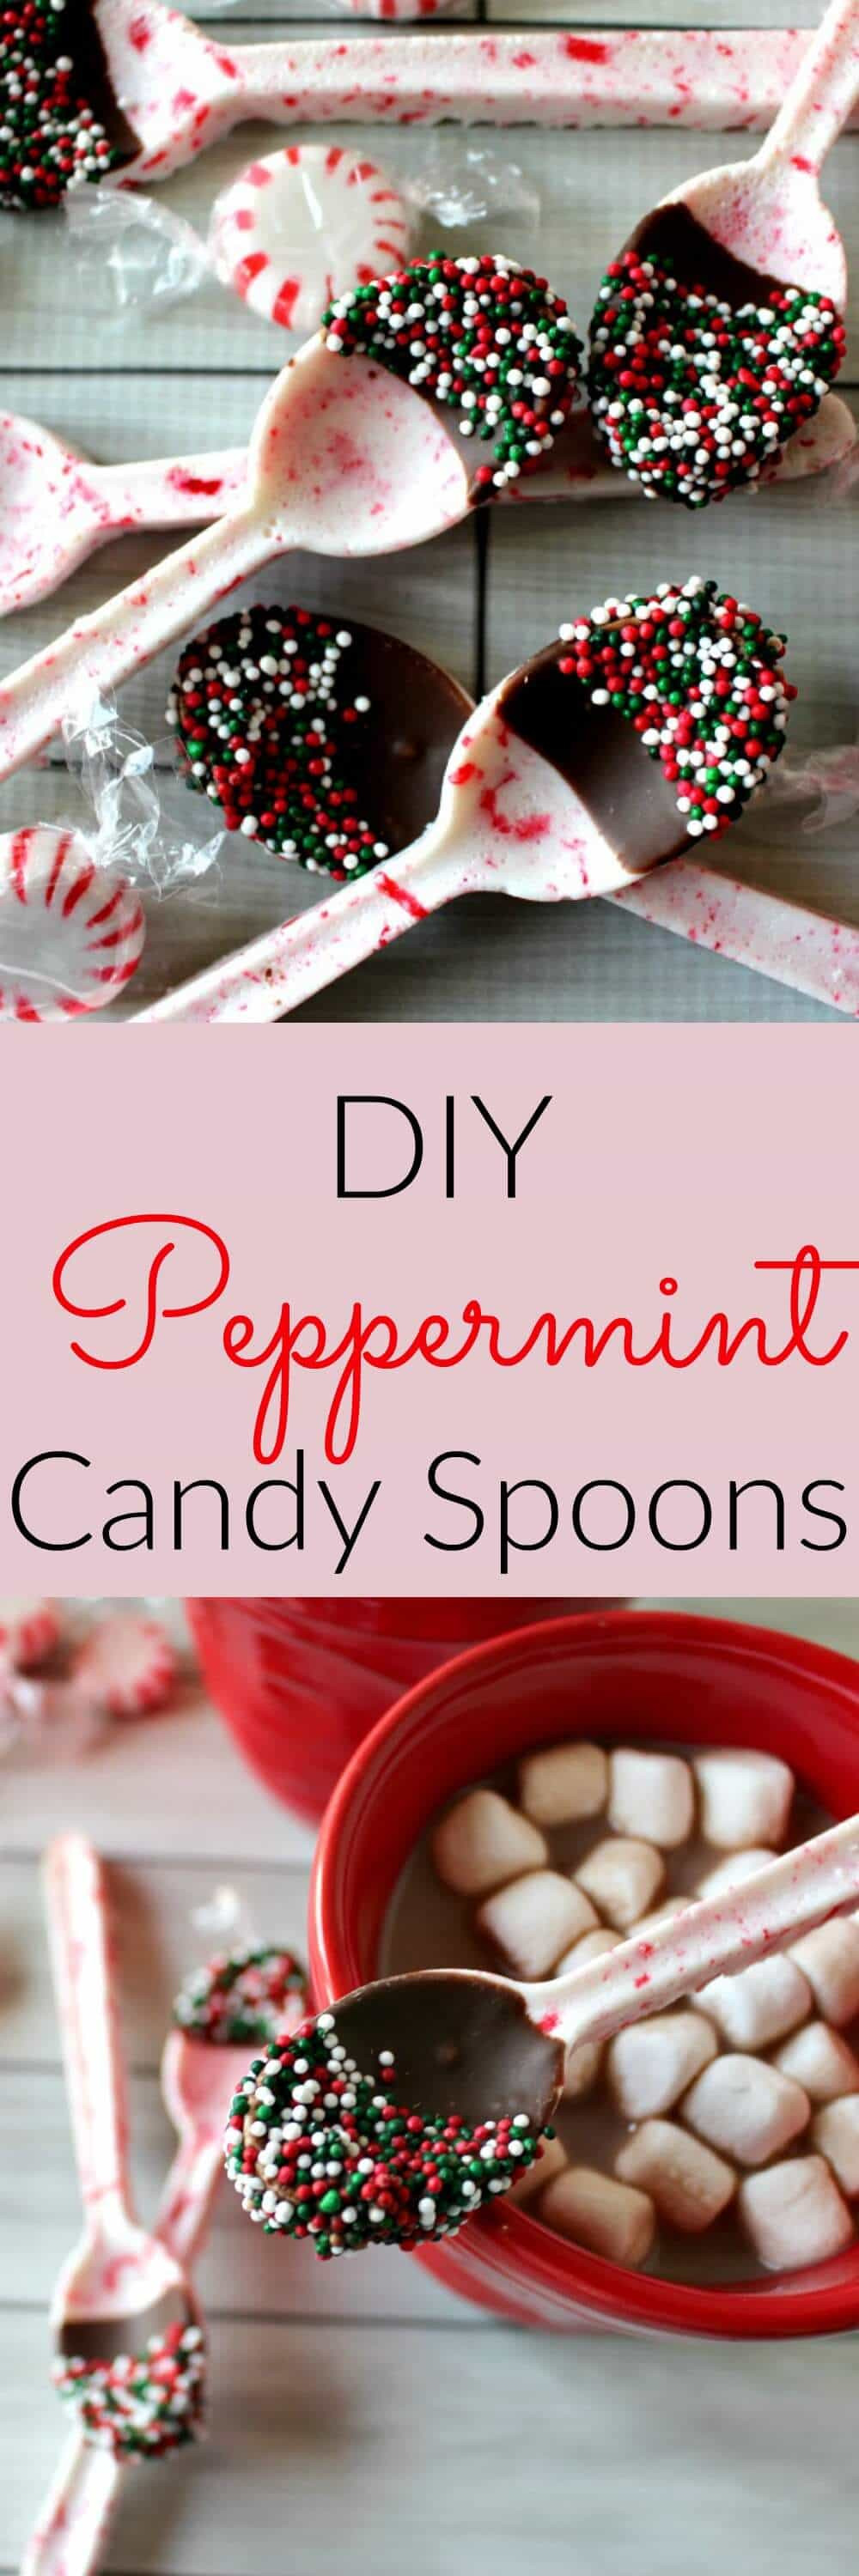 Christmas Candy Gift Ideas  DIY Peppermint Candy Spoons Princess Pinky Girl